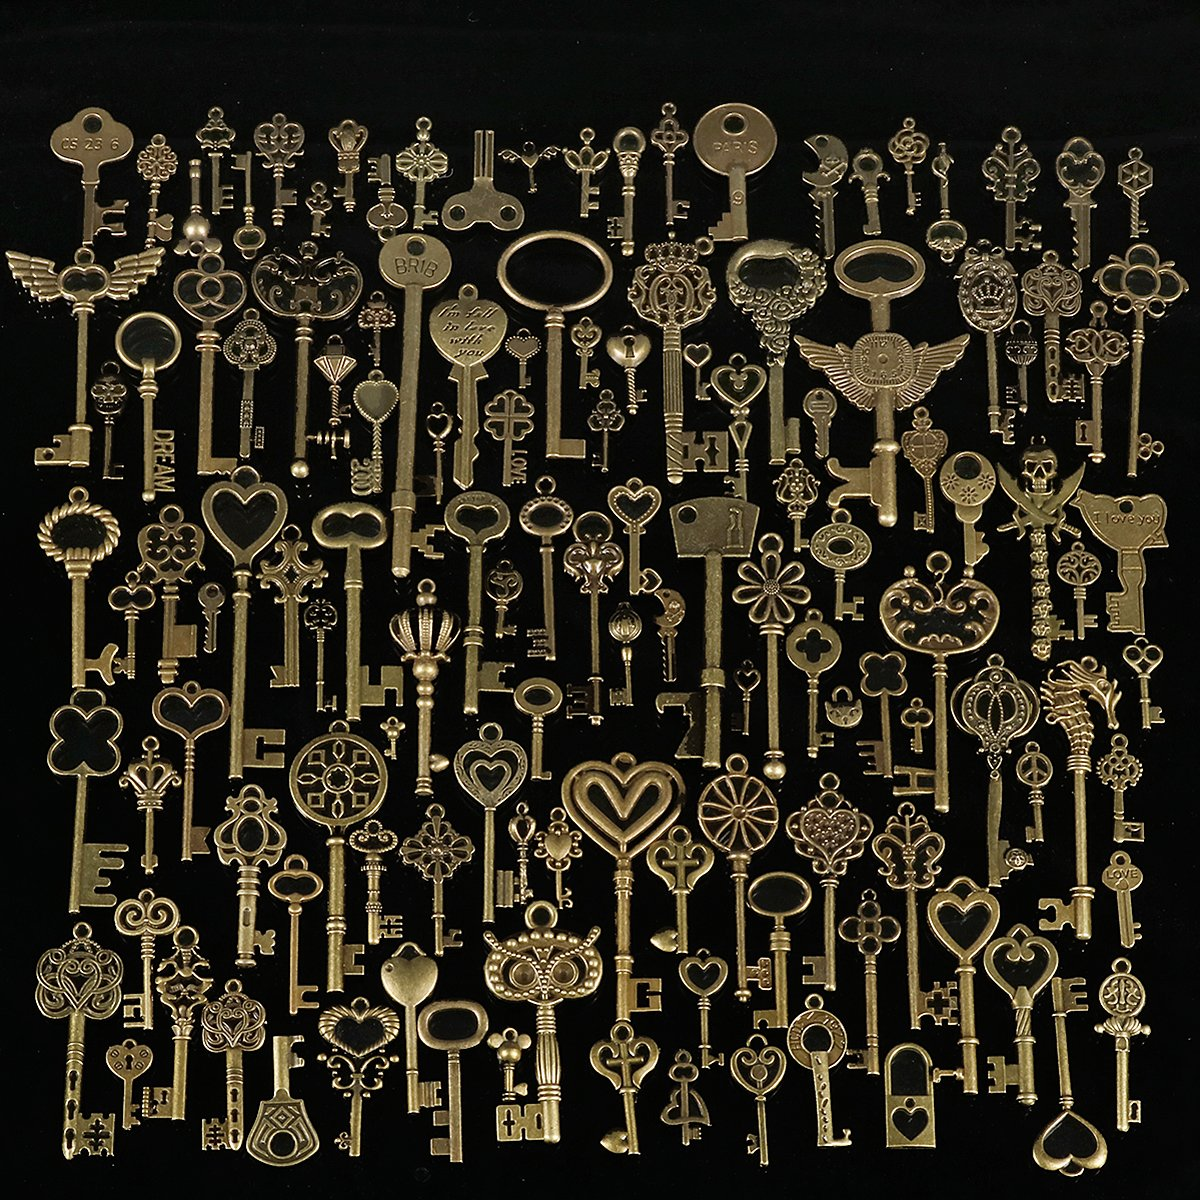 130pcs Antique Bronze Brass Vtg Ornate Skeleton Keys Lot Pendant Fancy Heart Pendants Key Gift by Ologymart